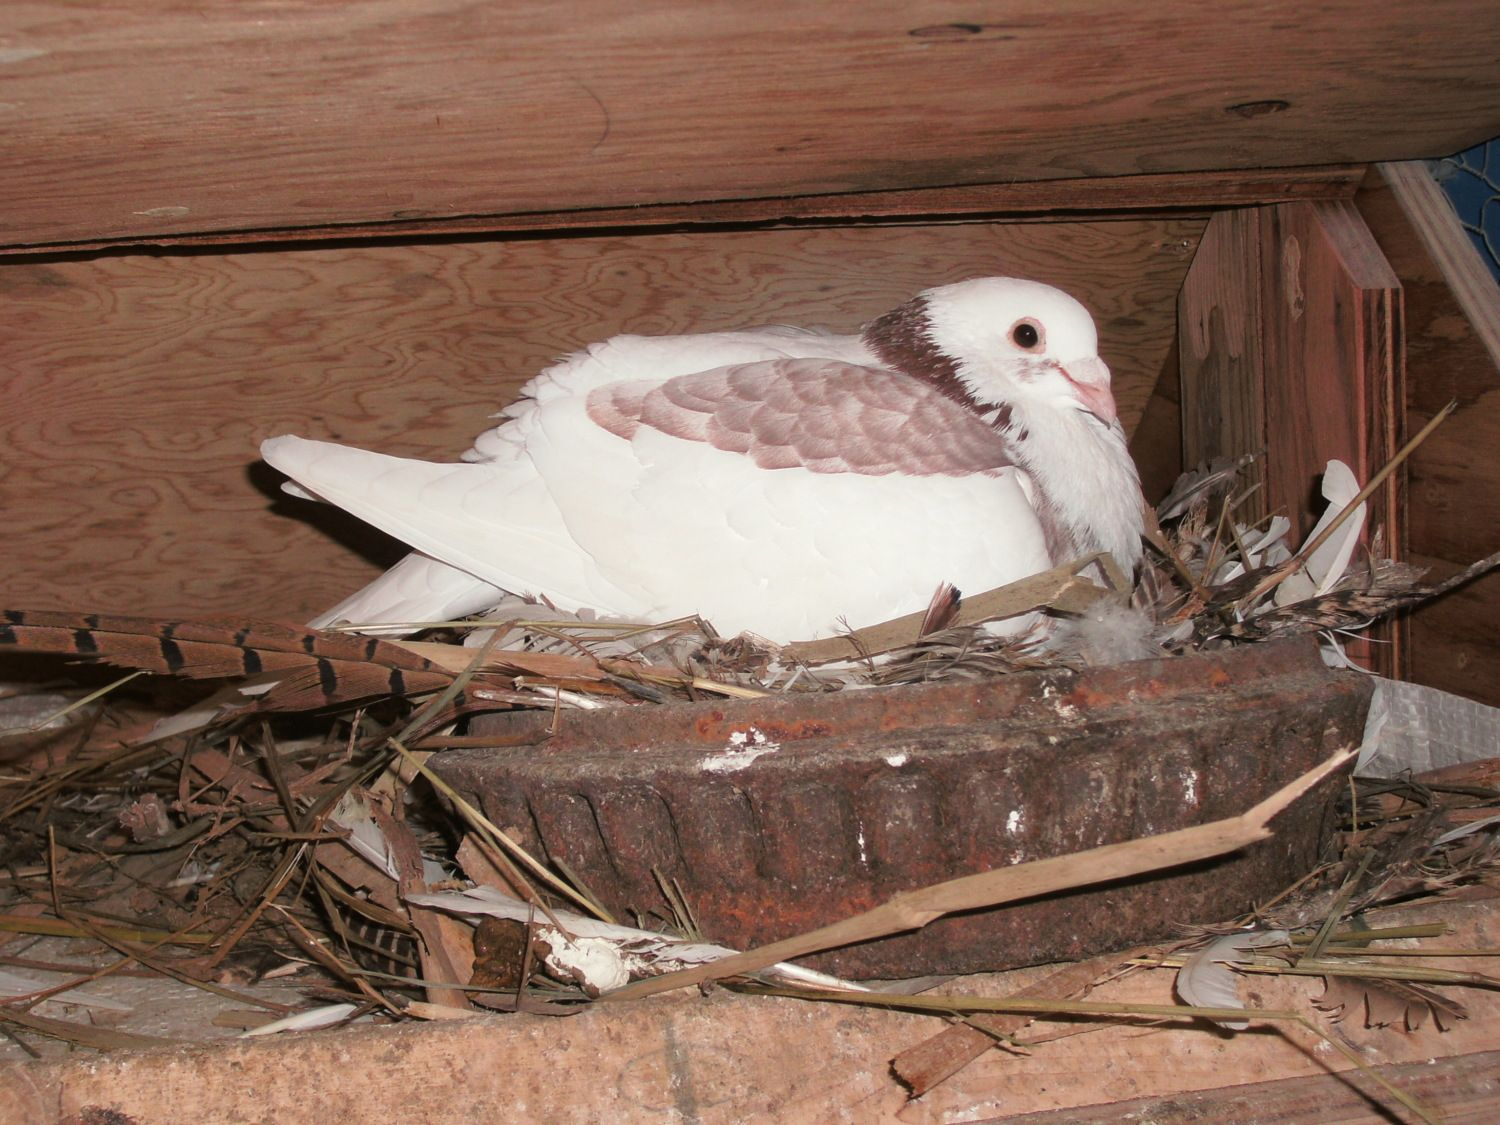 Daddy pigeon incubating 2 squabs hatched Dec 27 & 28th 2012.